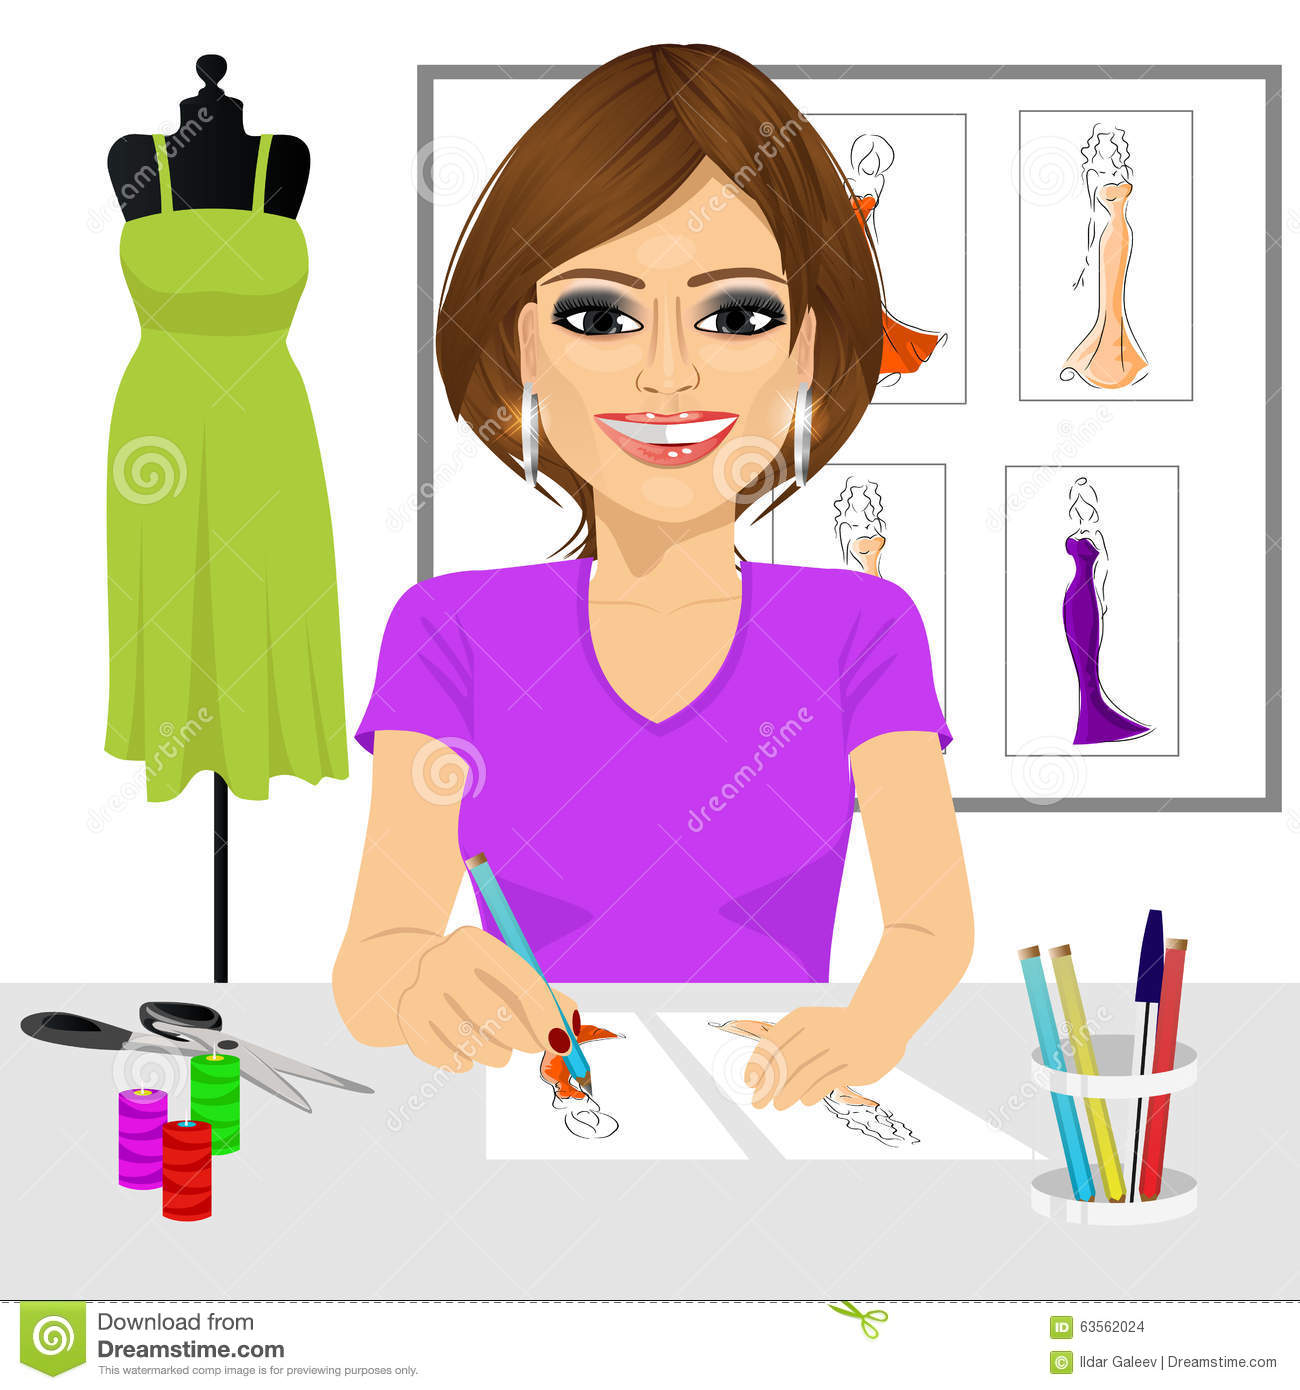 How to Write a Business Plan in Fashion Design